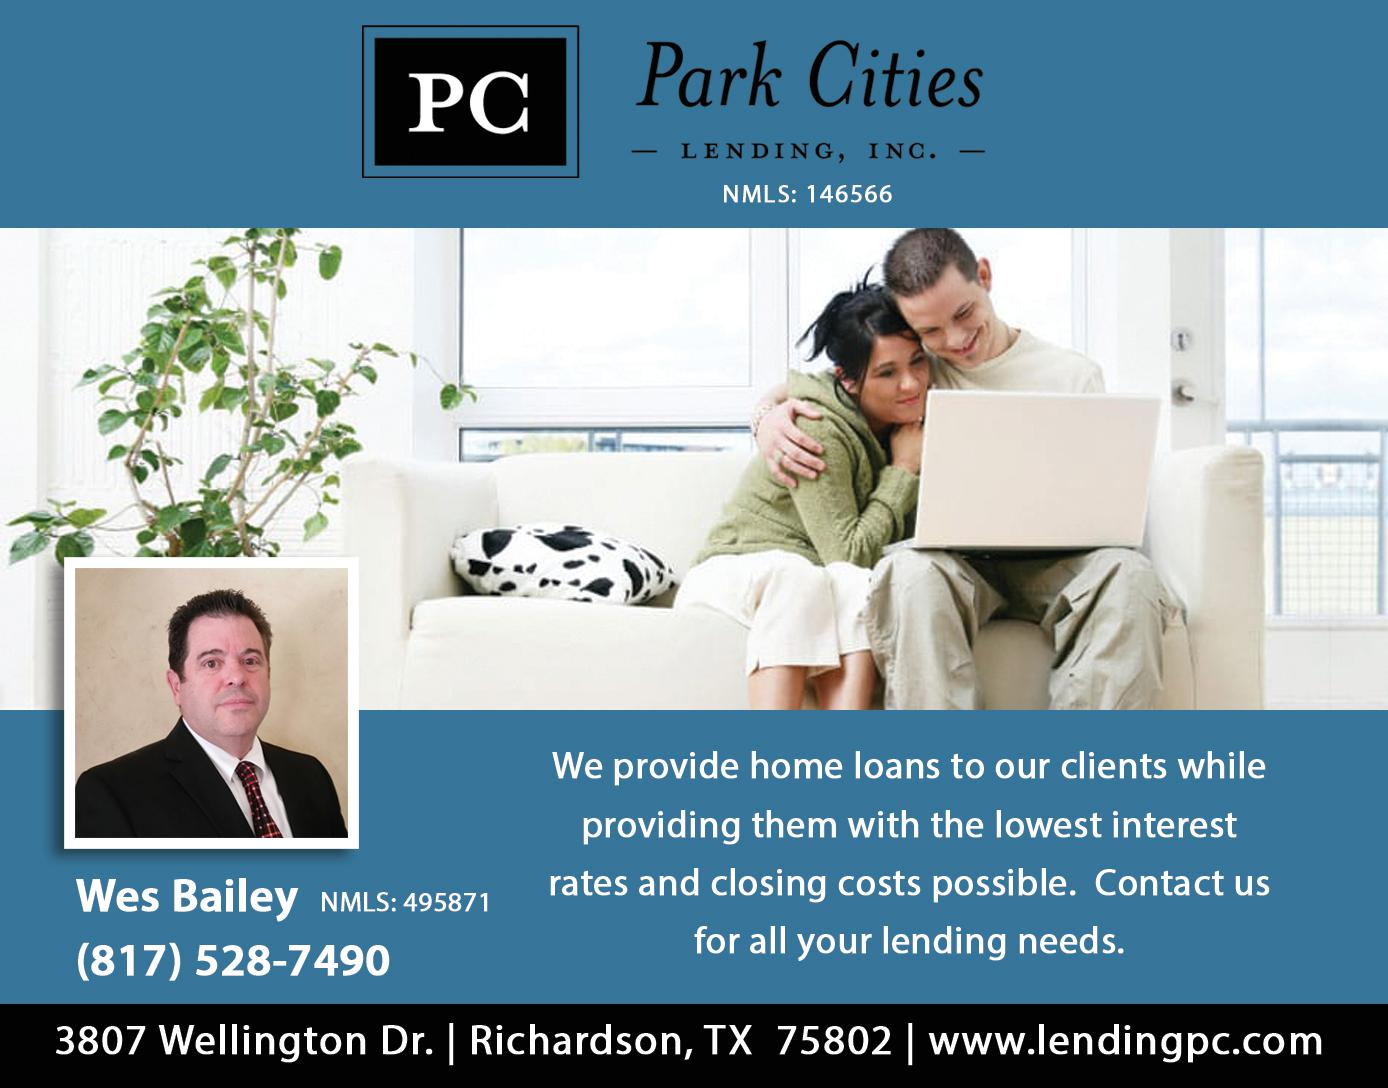 Park Cities Lending, INC. NMLS: 146566